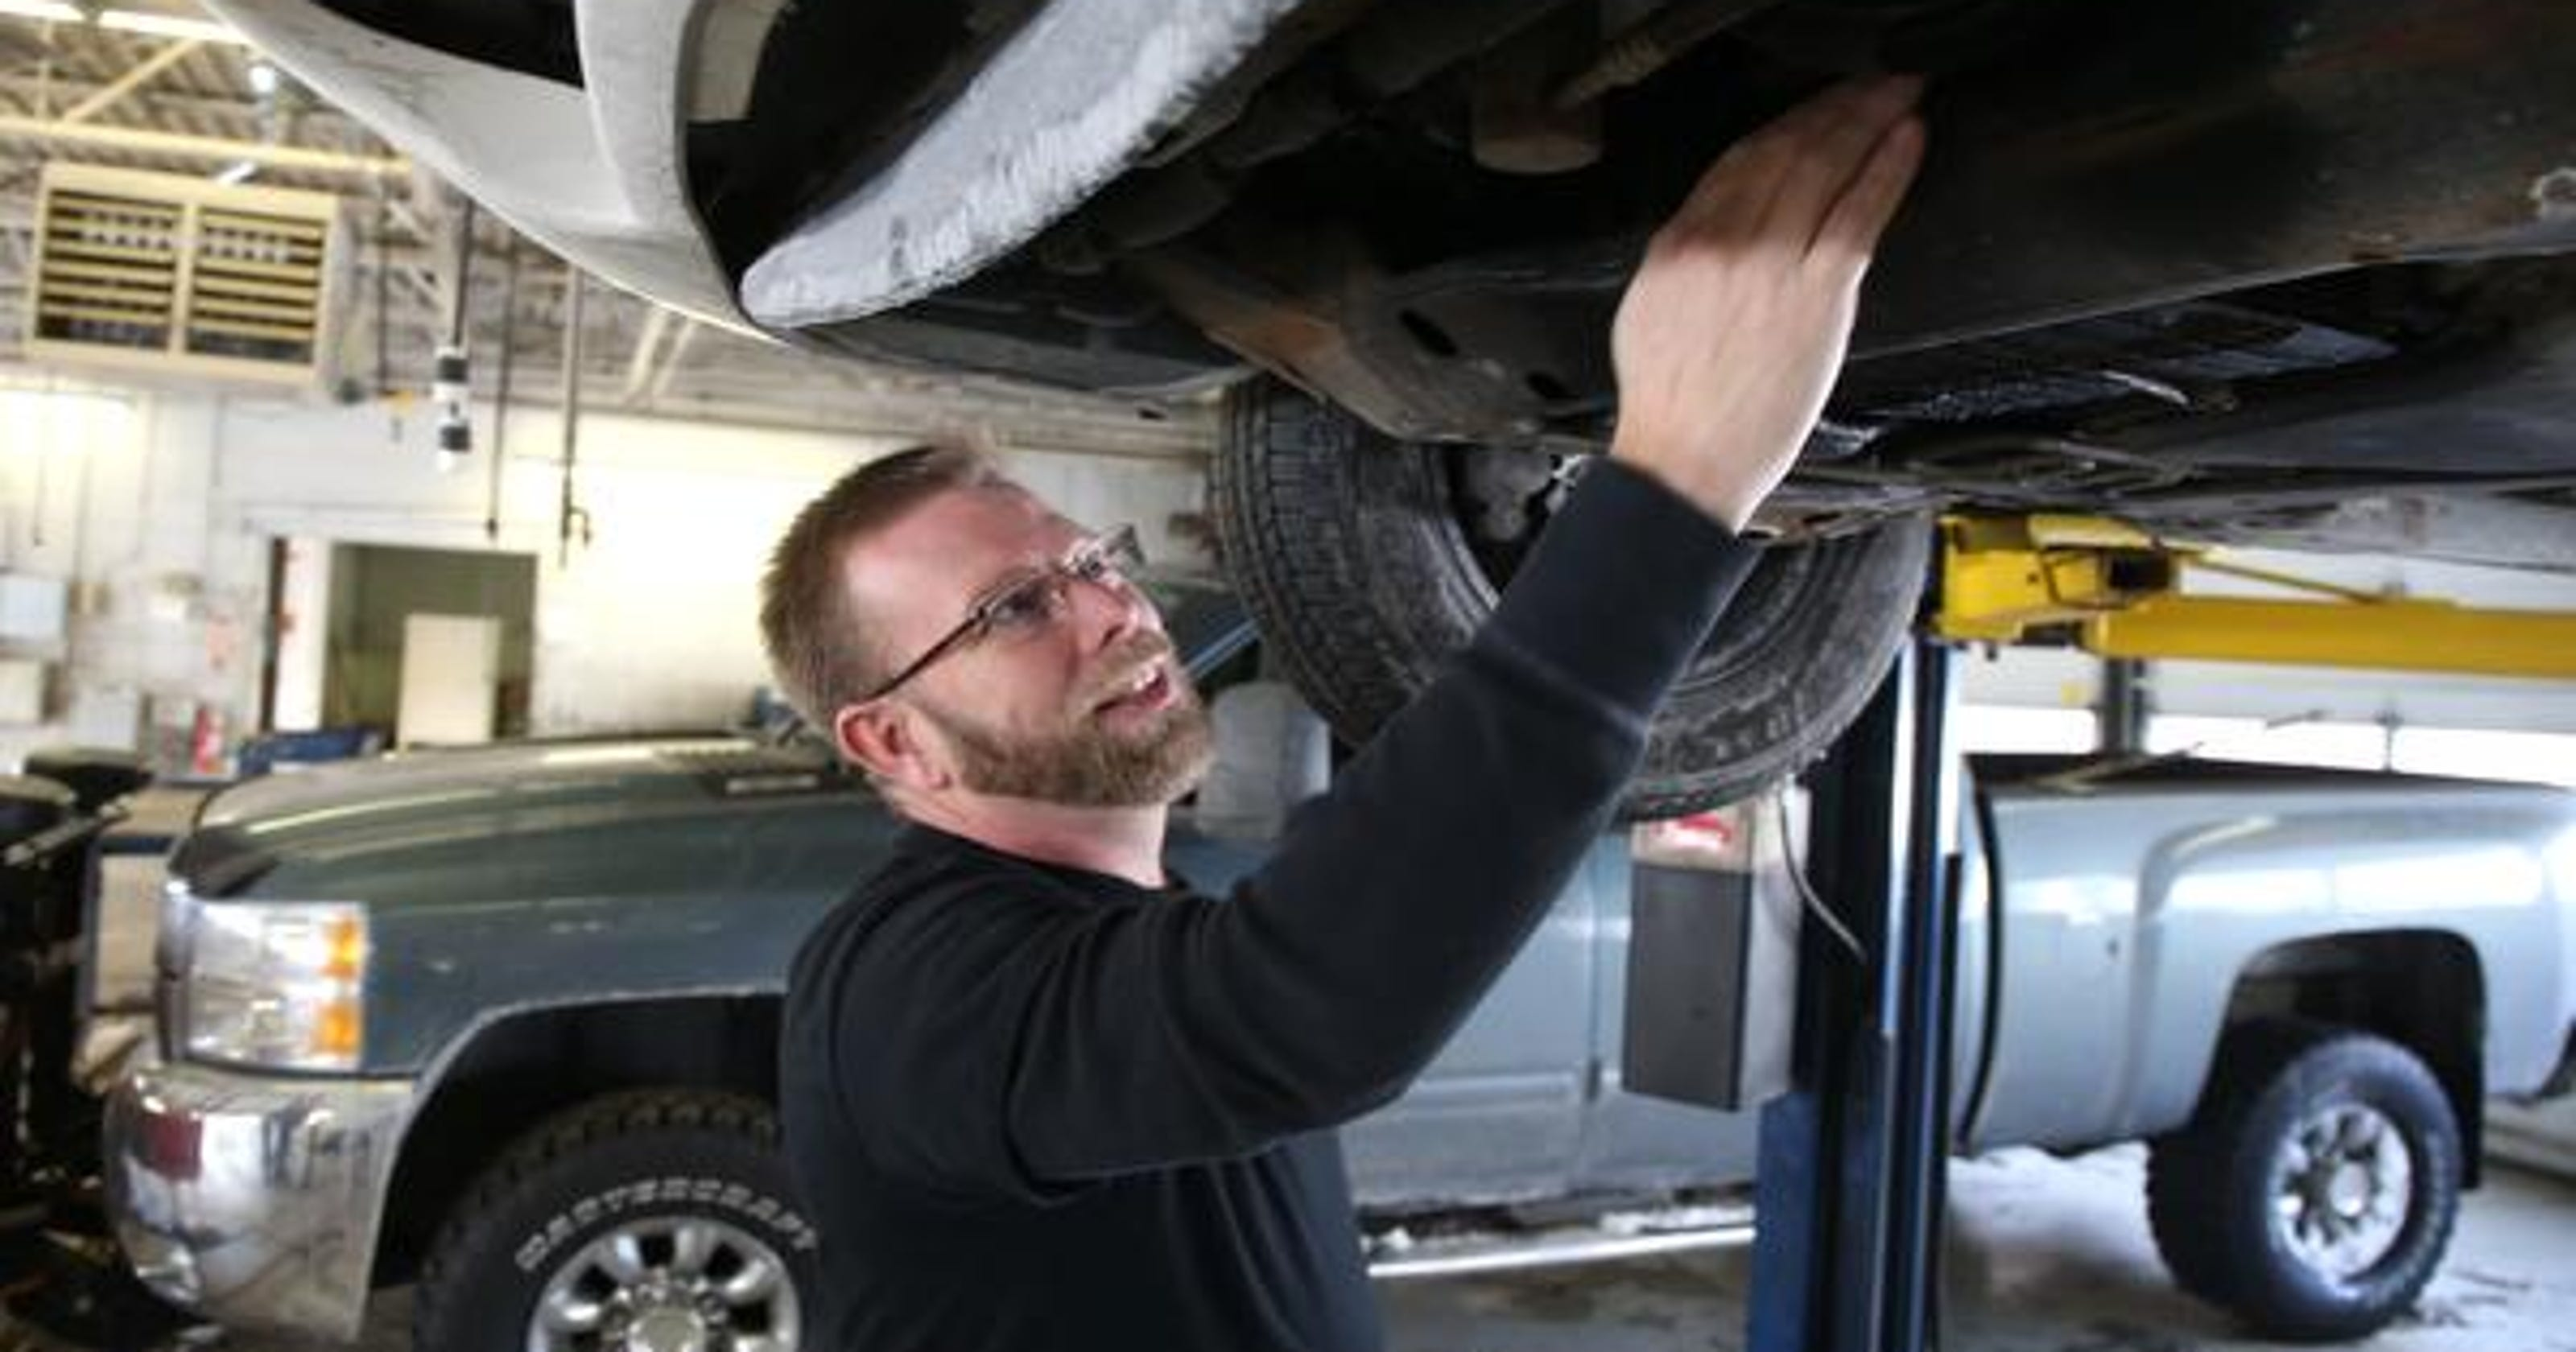 Self-serve auto shops cater to DIY mechanics